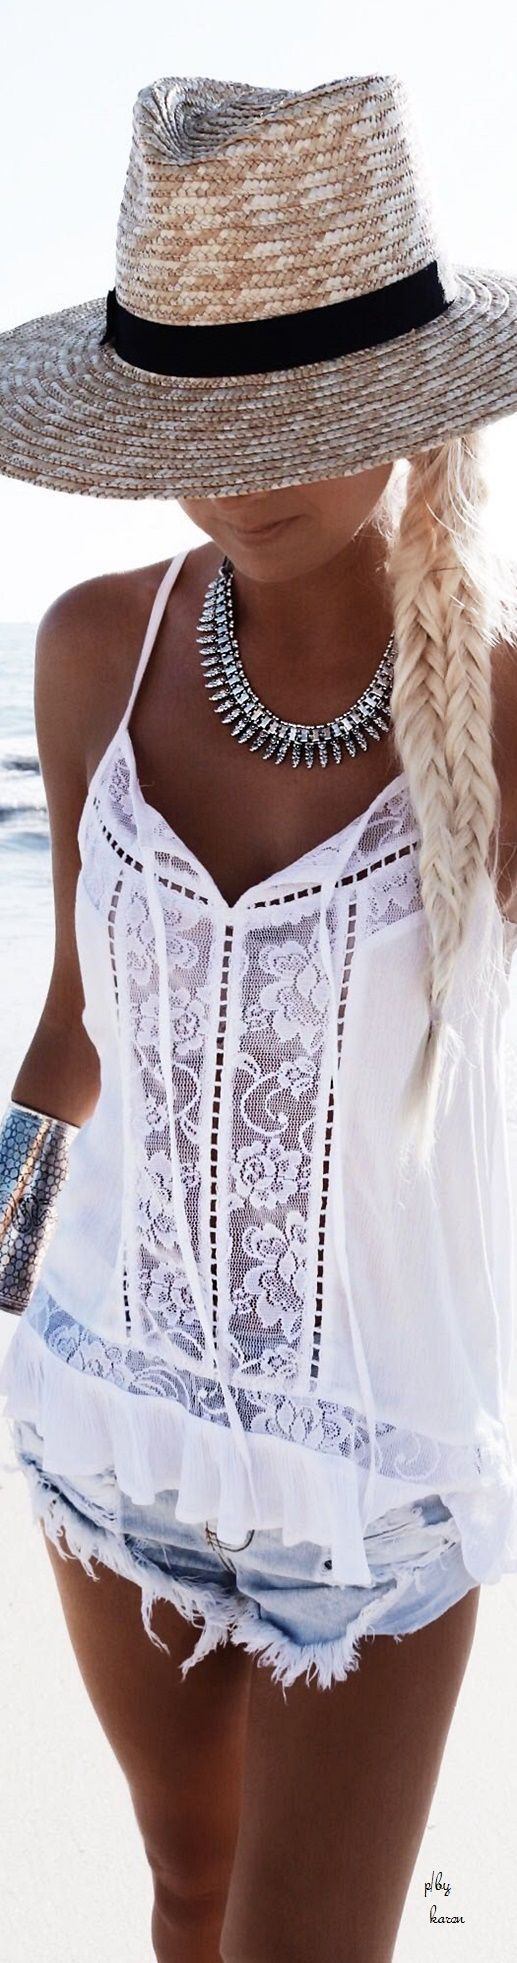 Beautiful white top. Festival Fashion, makeup, outfit ideas and style tips. Get the boho-chic/hippie look.